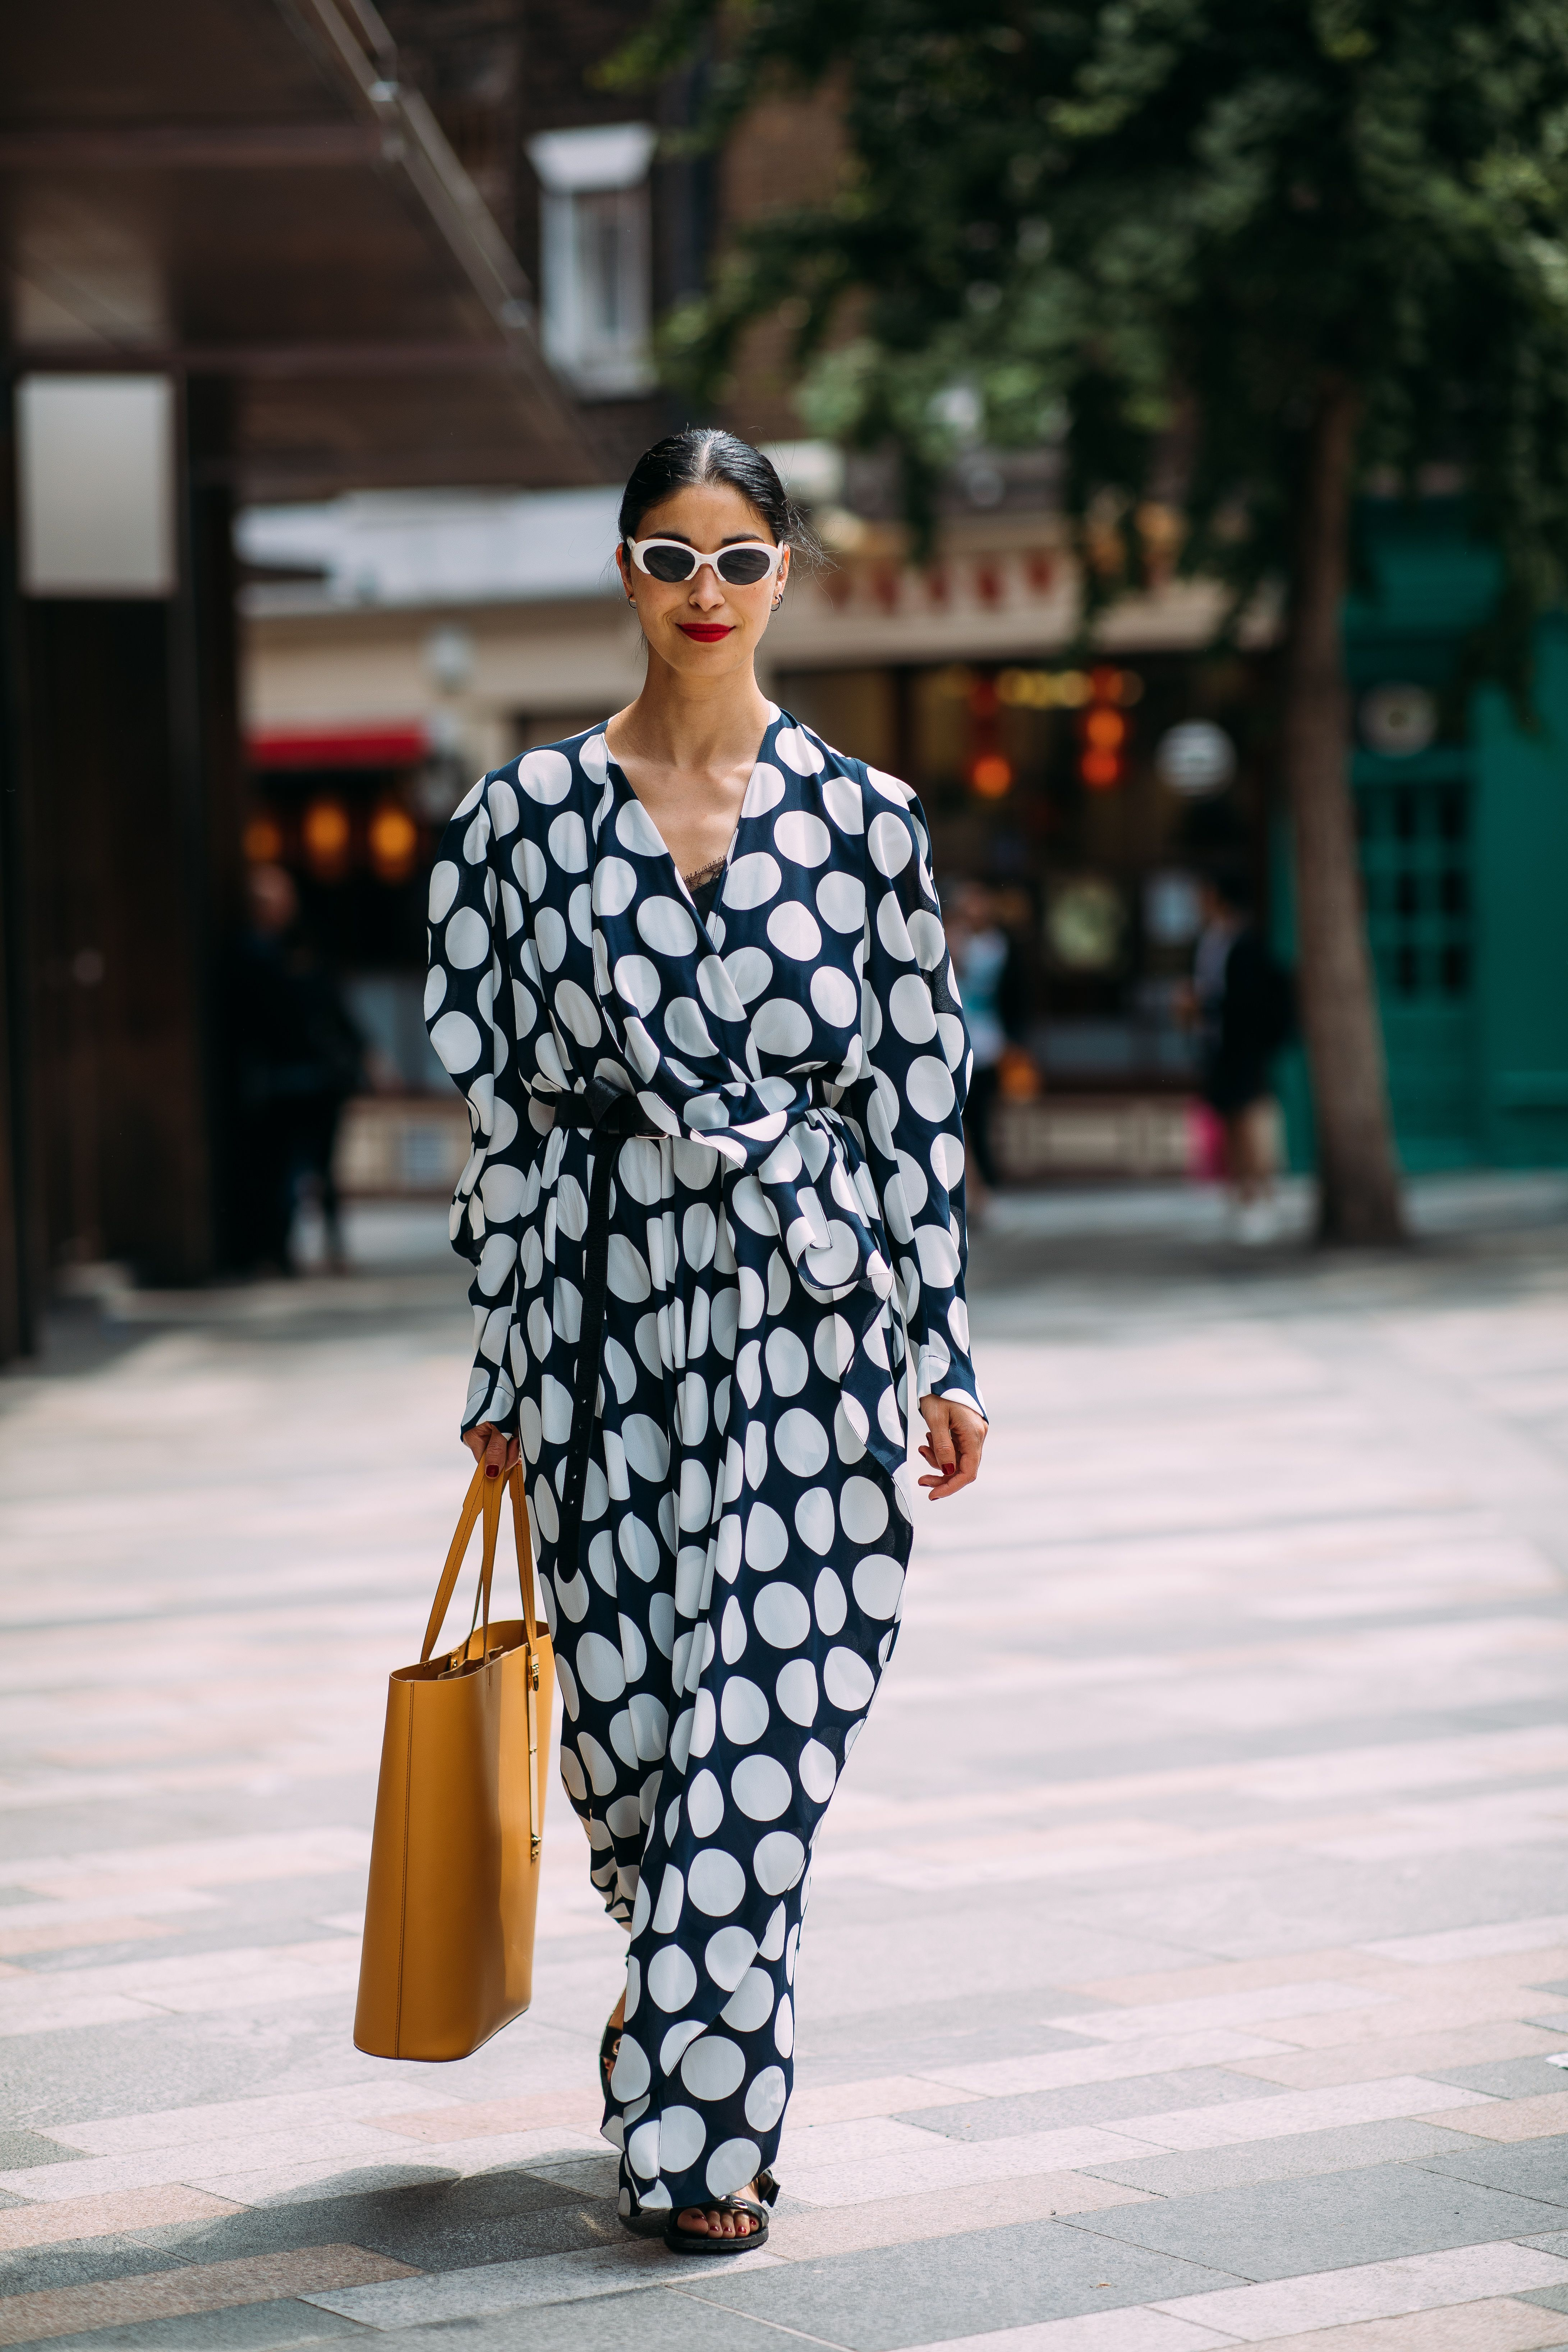 Street Style Highlights From SS 2019 LFW advise